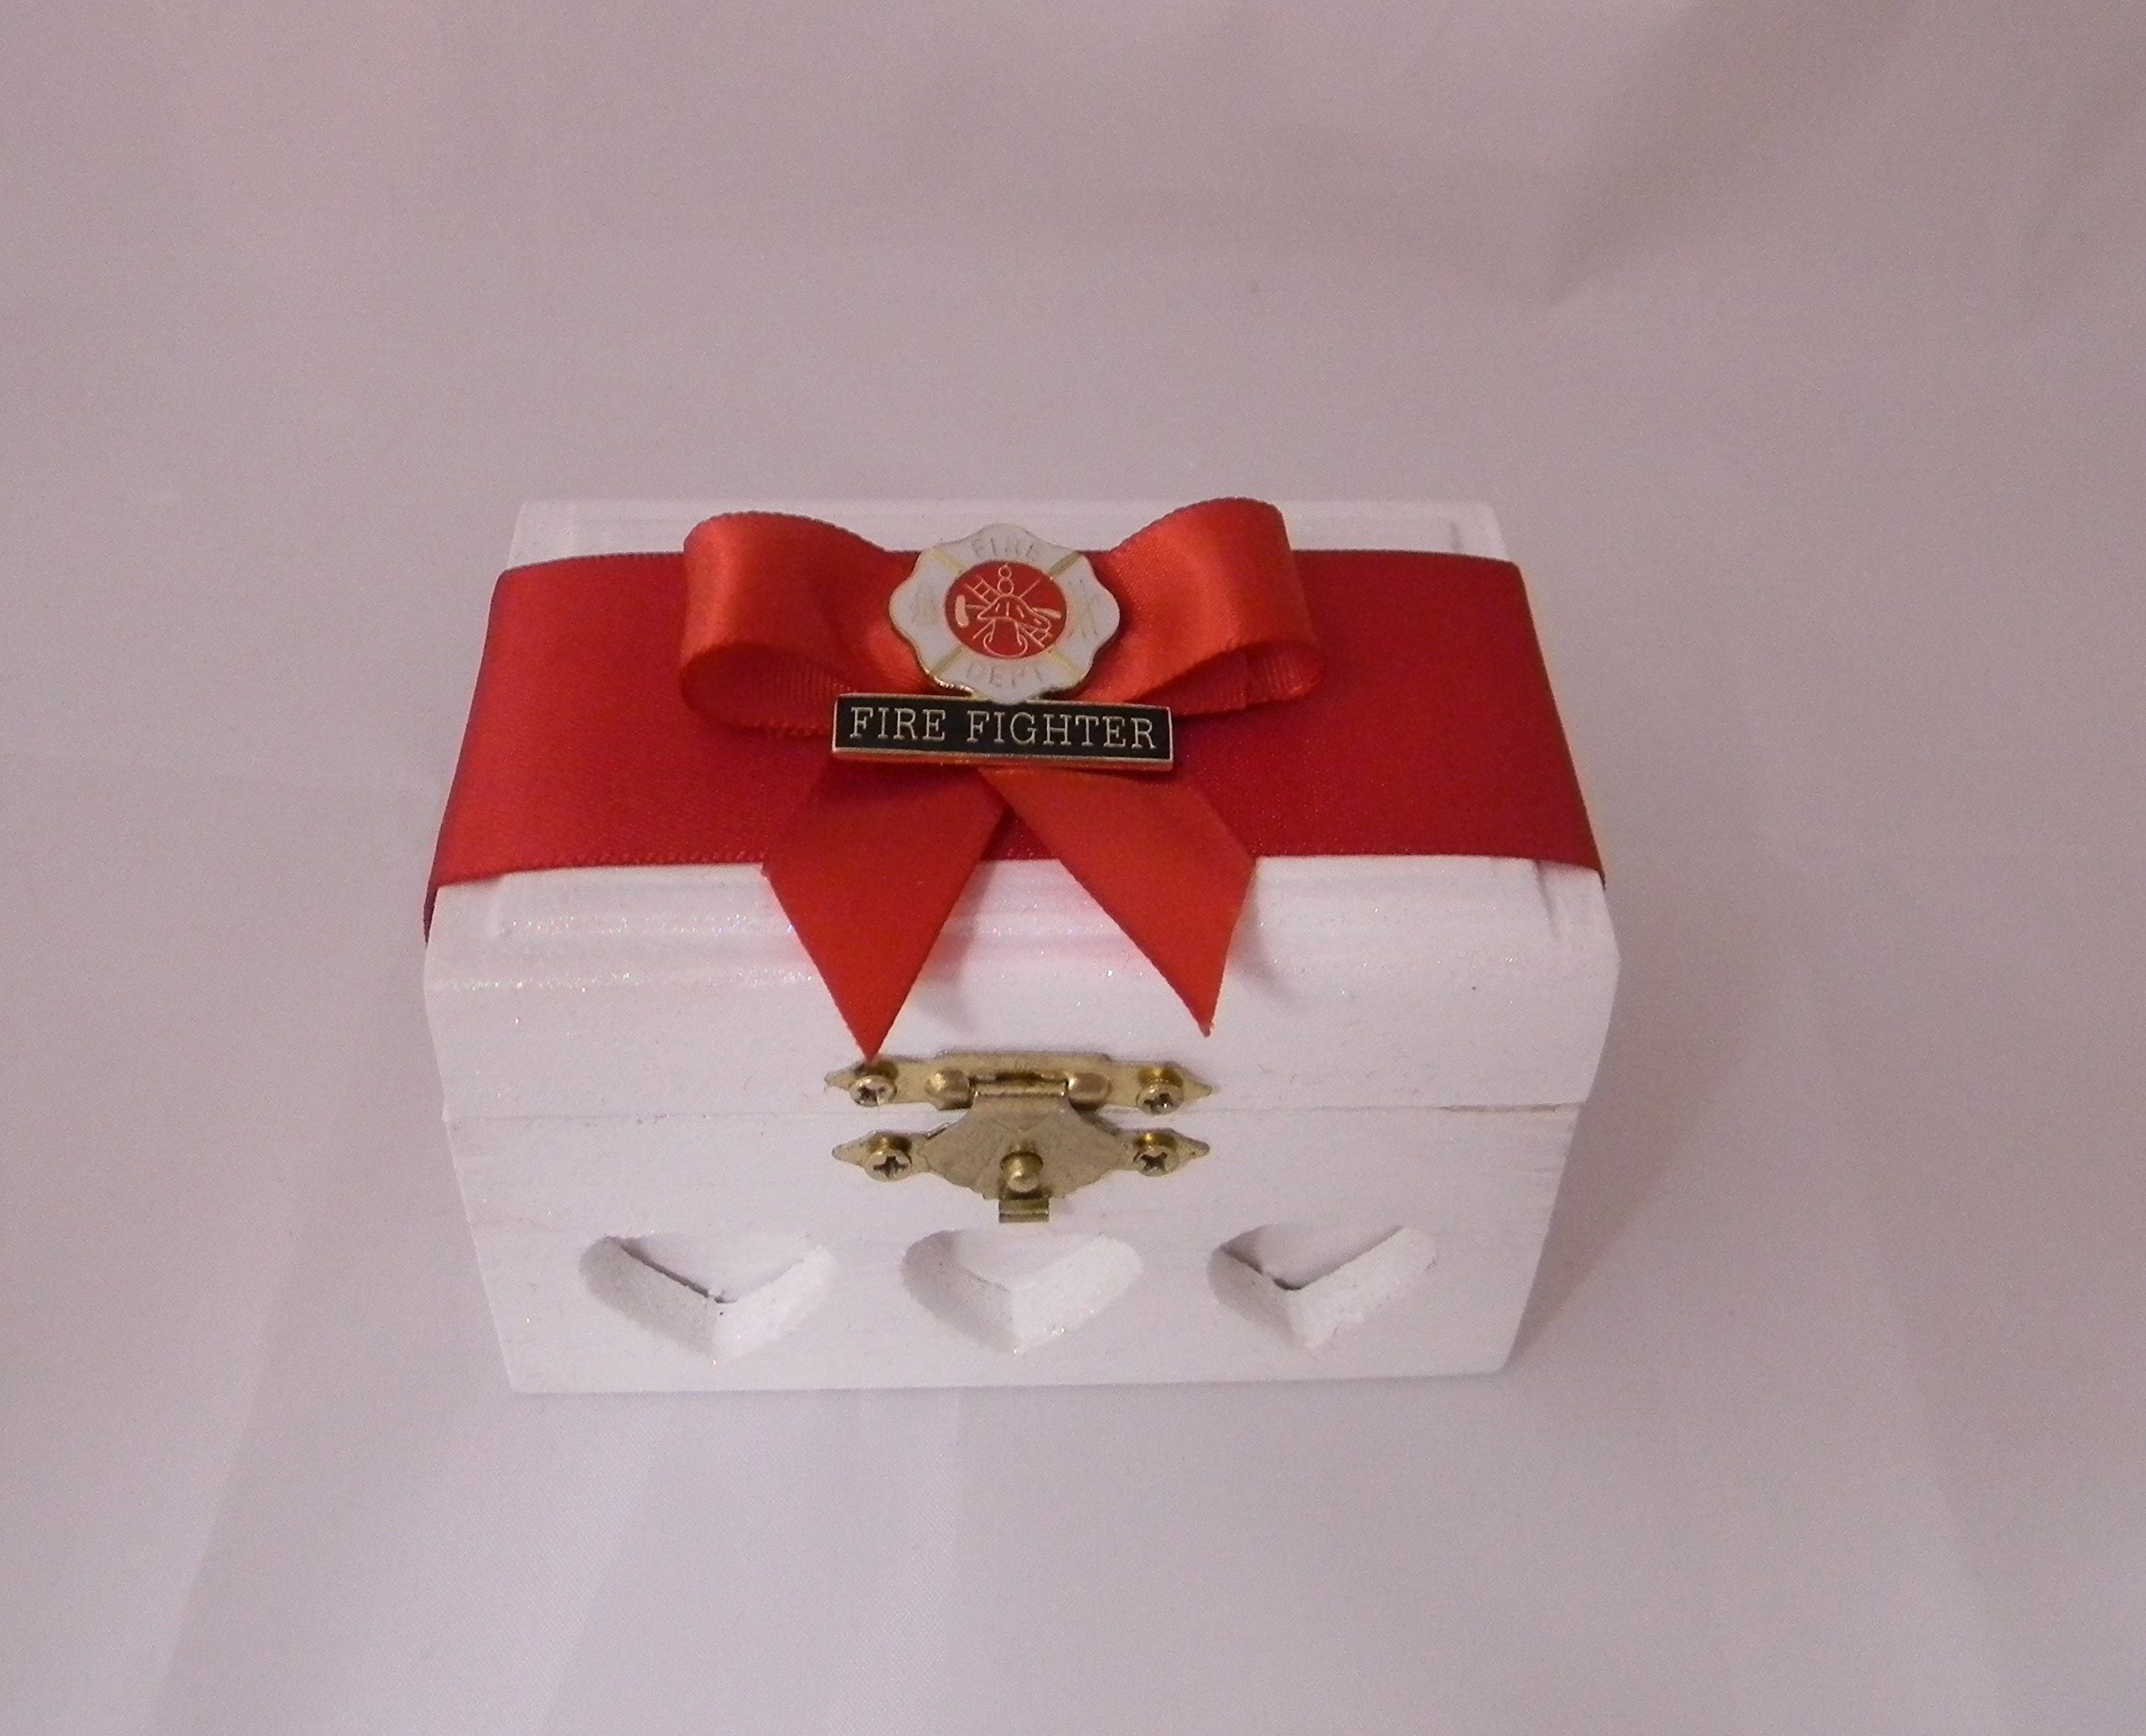 Wedding Ceremony Party Fireman Firefighter ring bearer pillow Box